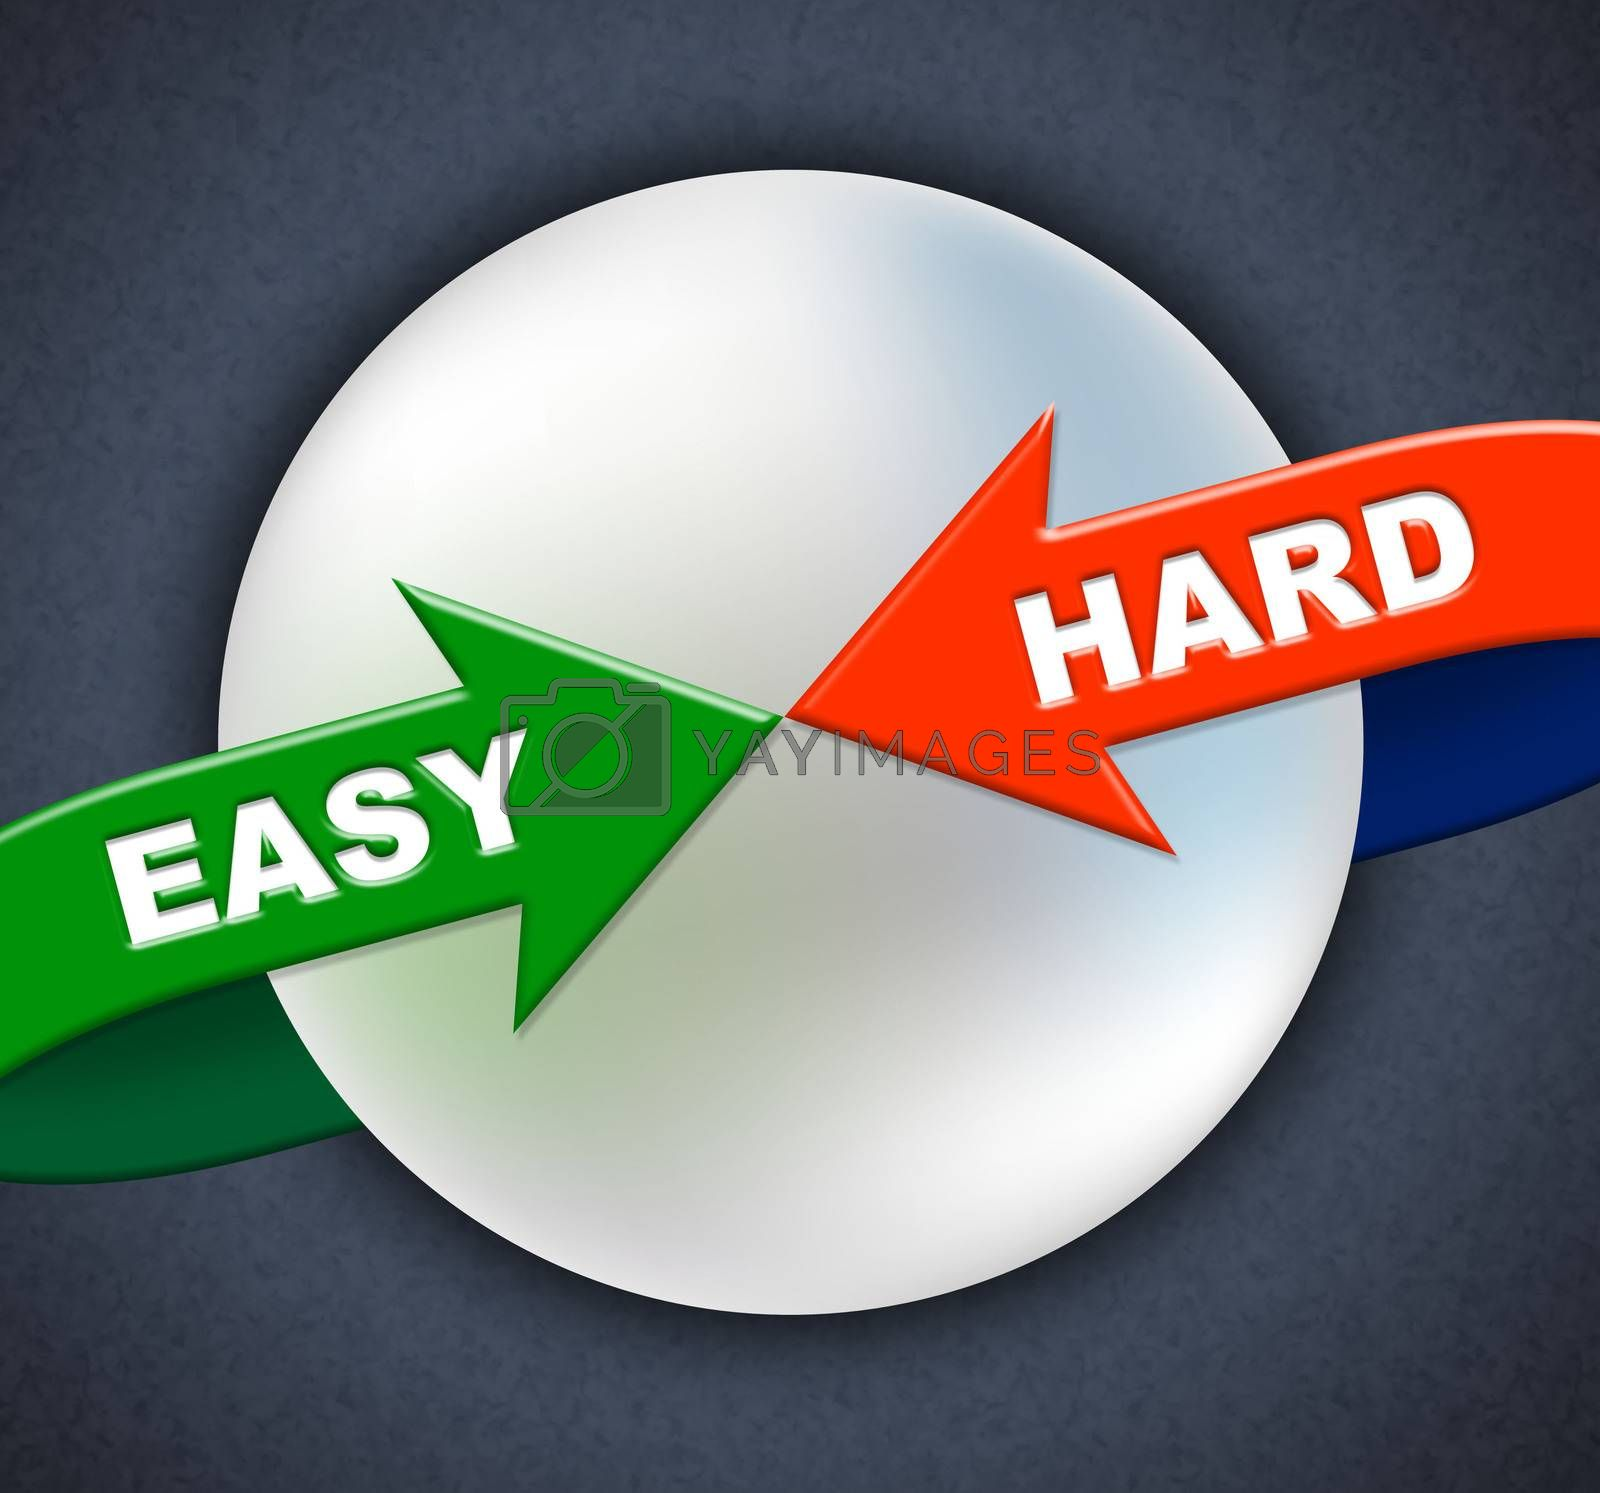 Easy Hard Arrows Shows Difficult Situation And Ease by stuartmiles